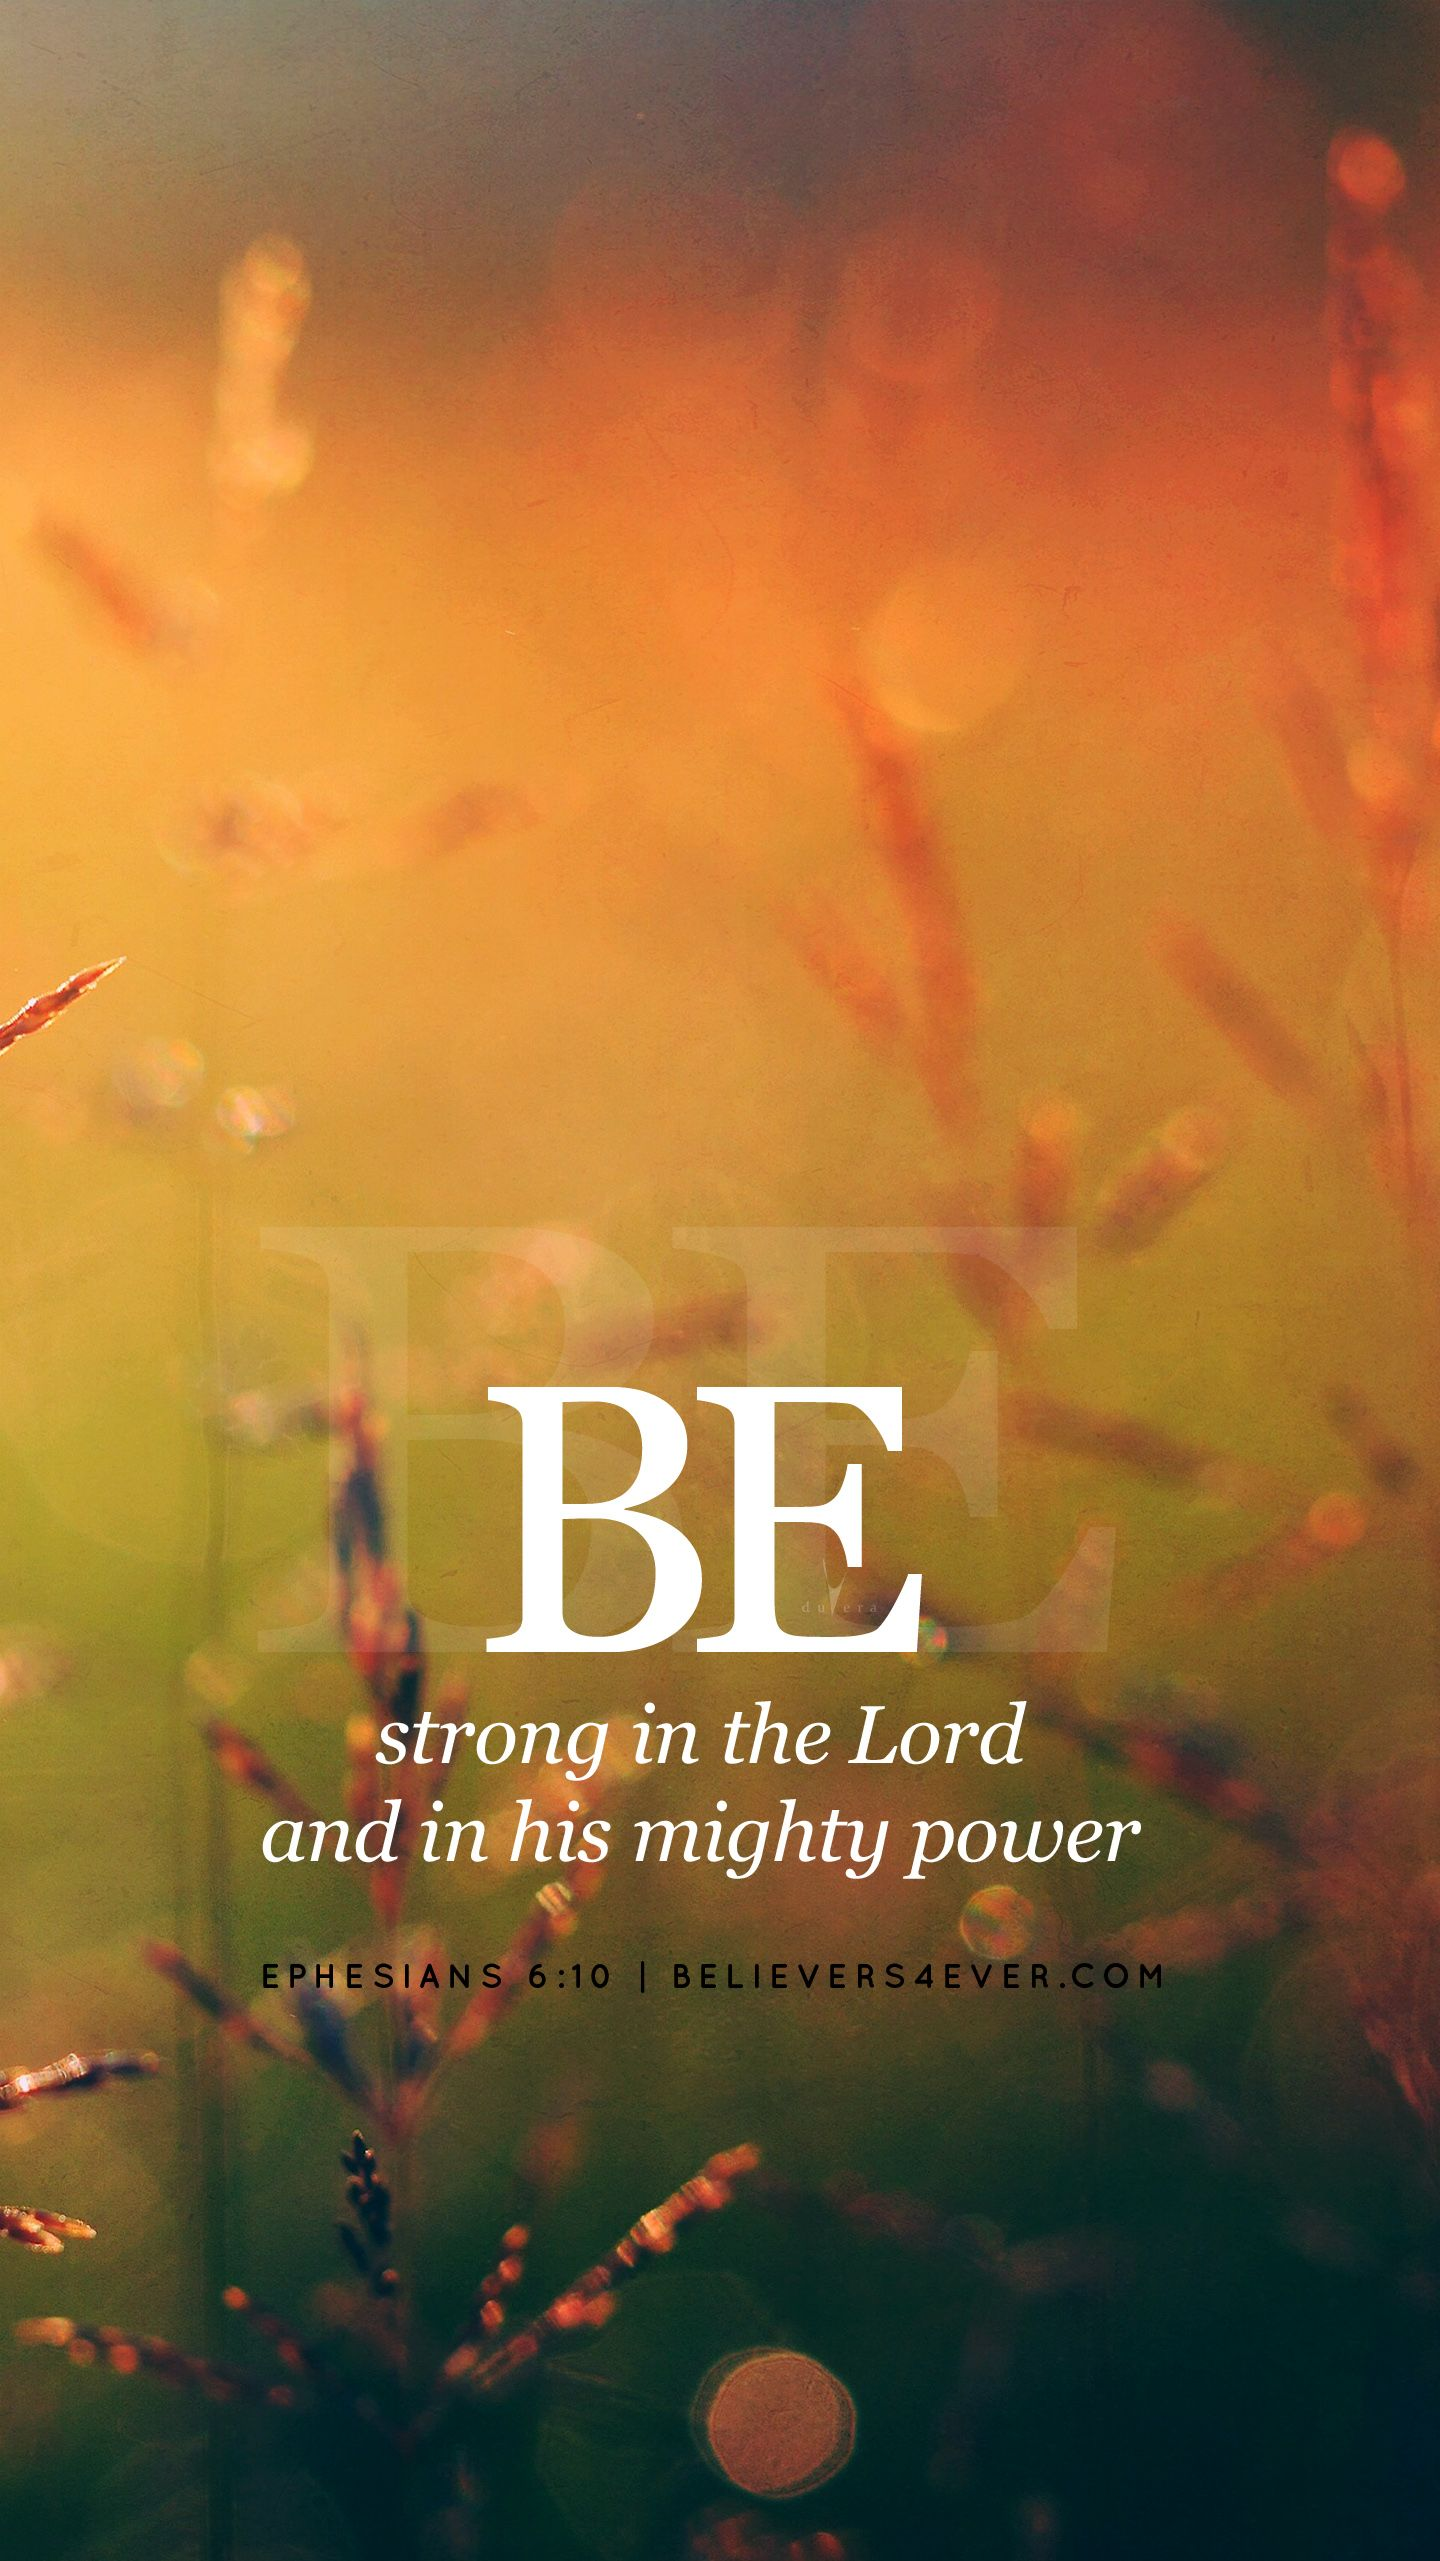 Be Strong In The Lord And In His Mighty Power. Ephesians 6:10. Free  Christian HD Mobile Wallpaper Background